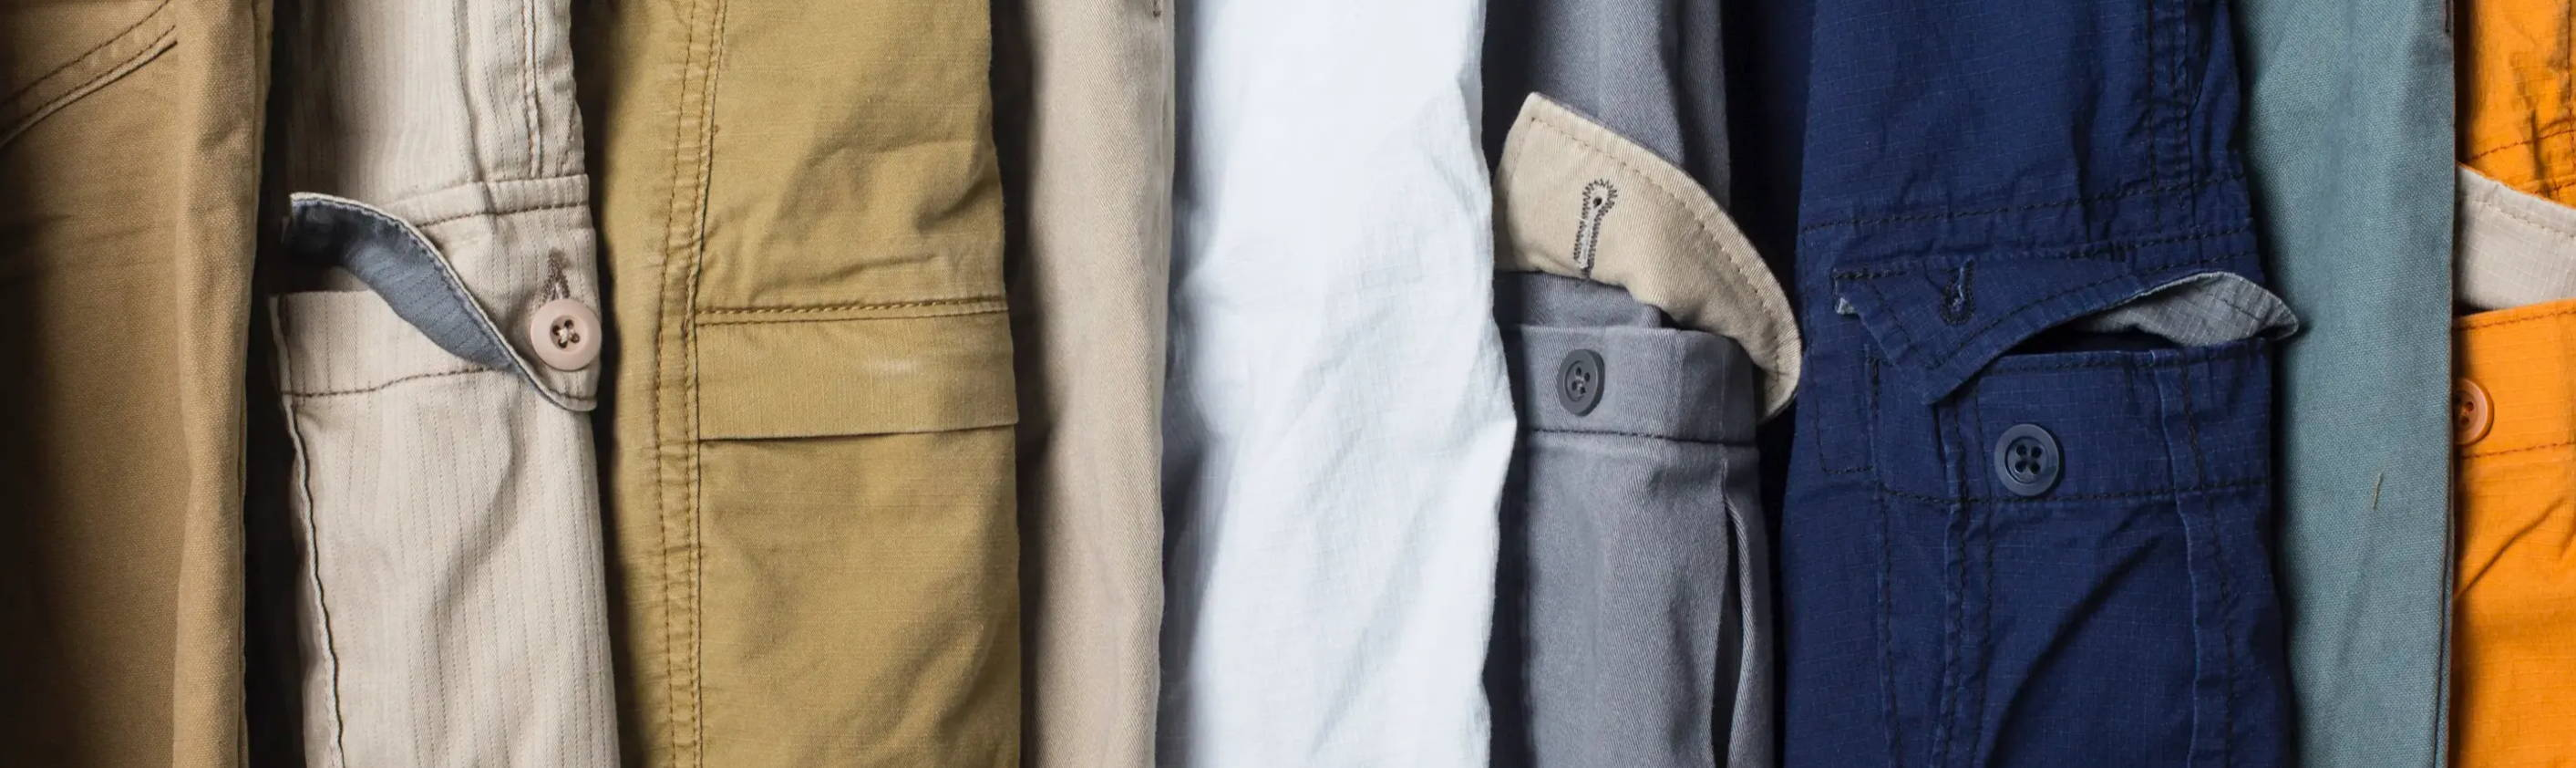 Closeup of Different Colored Short Cargo Pockets